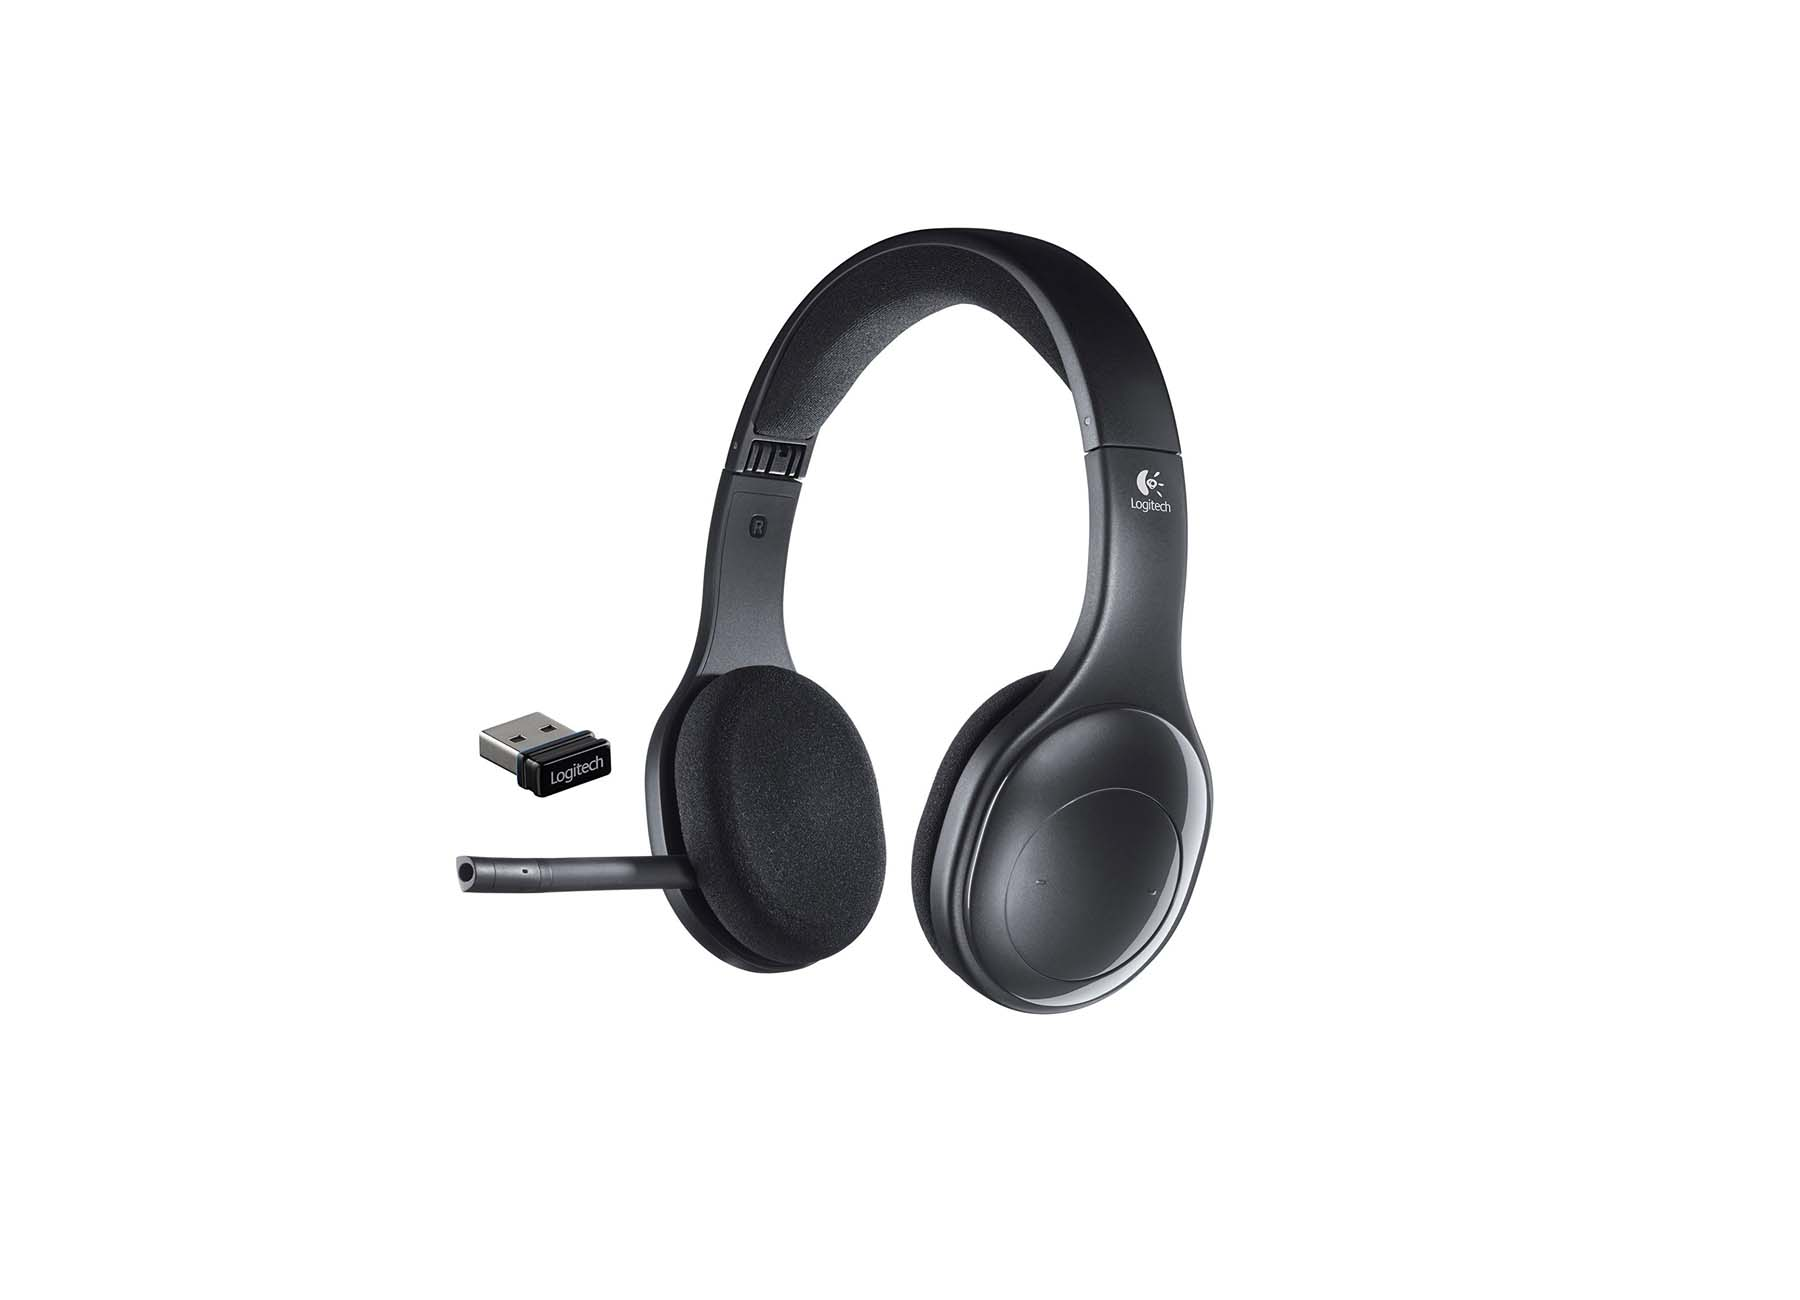 Logitech Wireless Headset Manual - Trusted Wiring Diagrams •